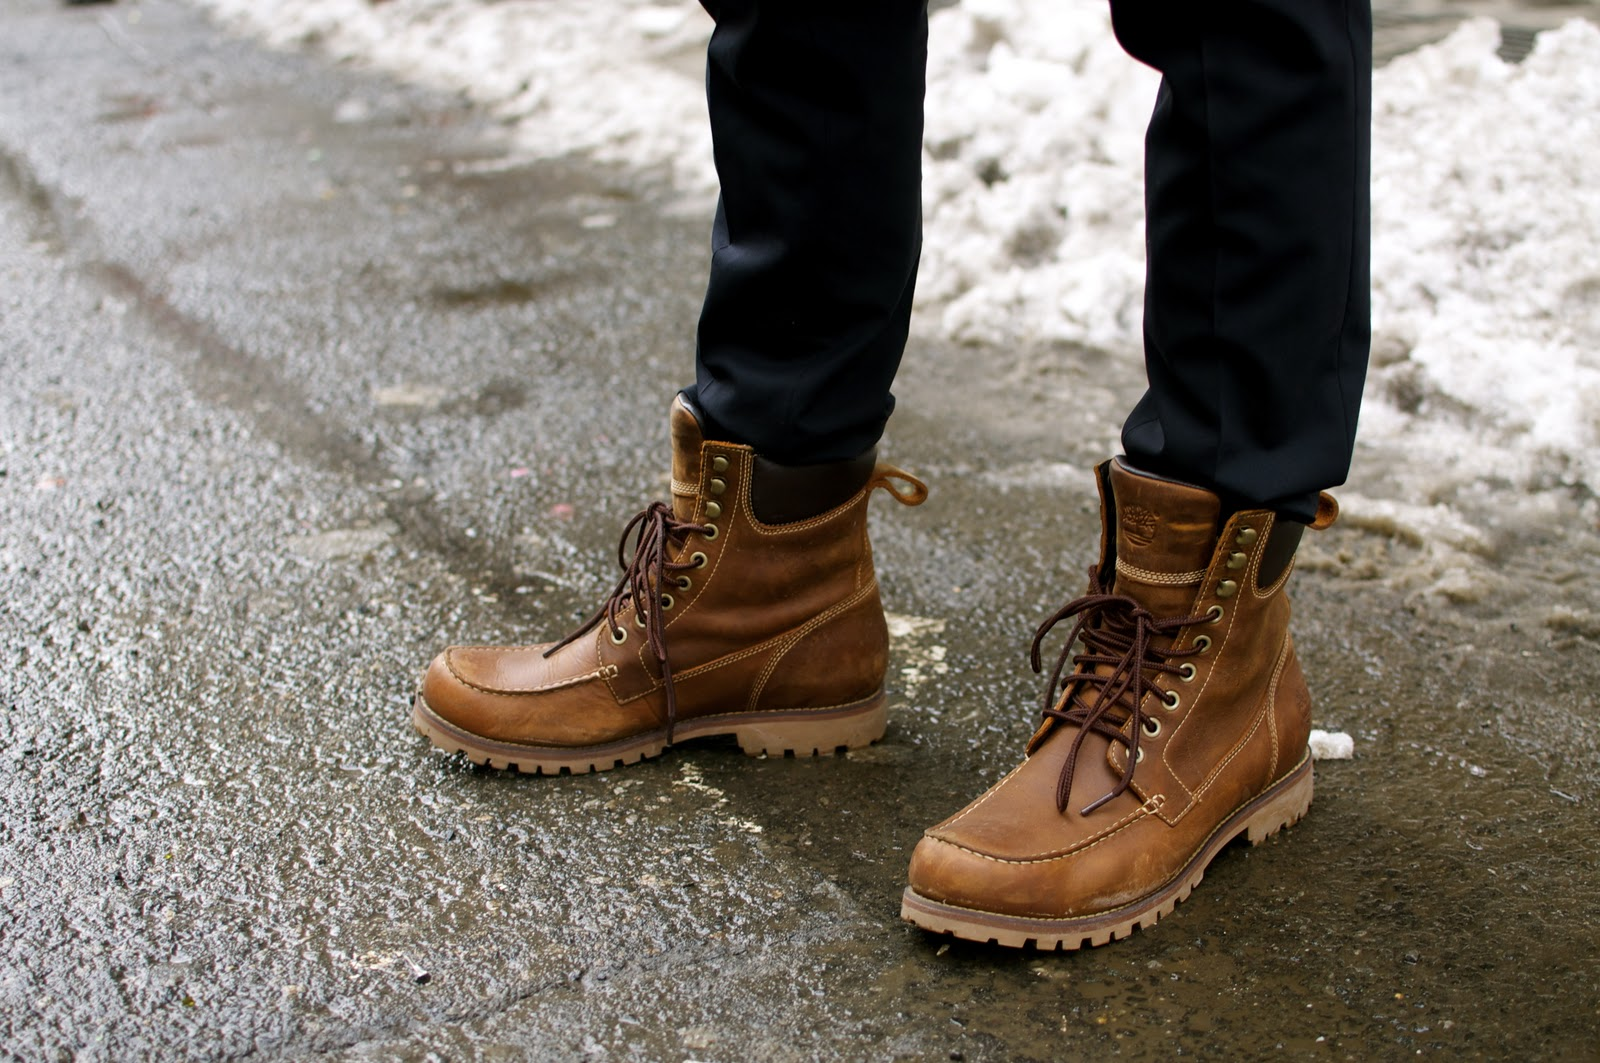 The Top 10 Best Boots For Cold Weather In 2019 Complete